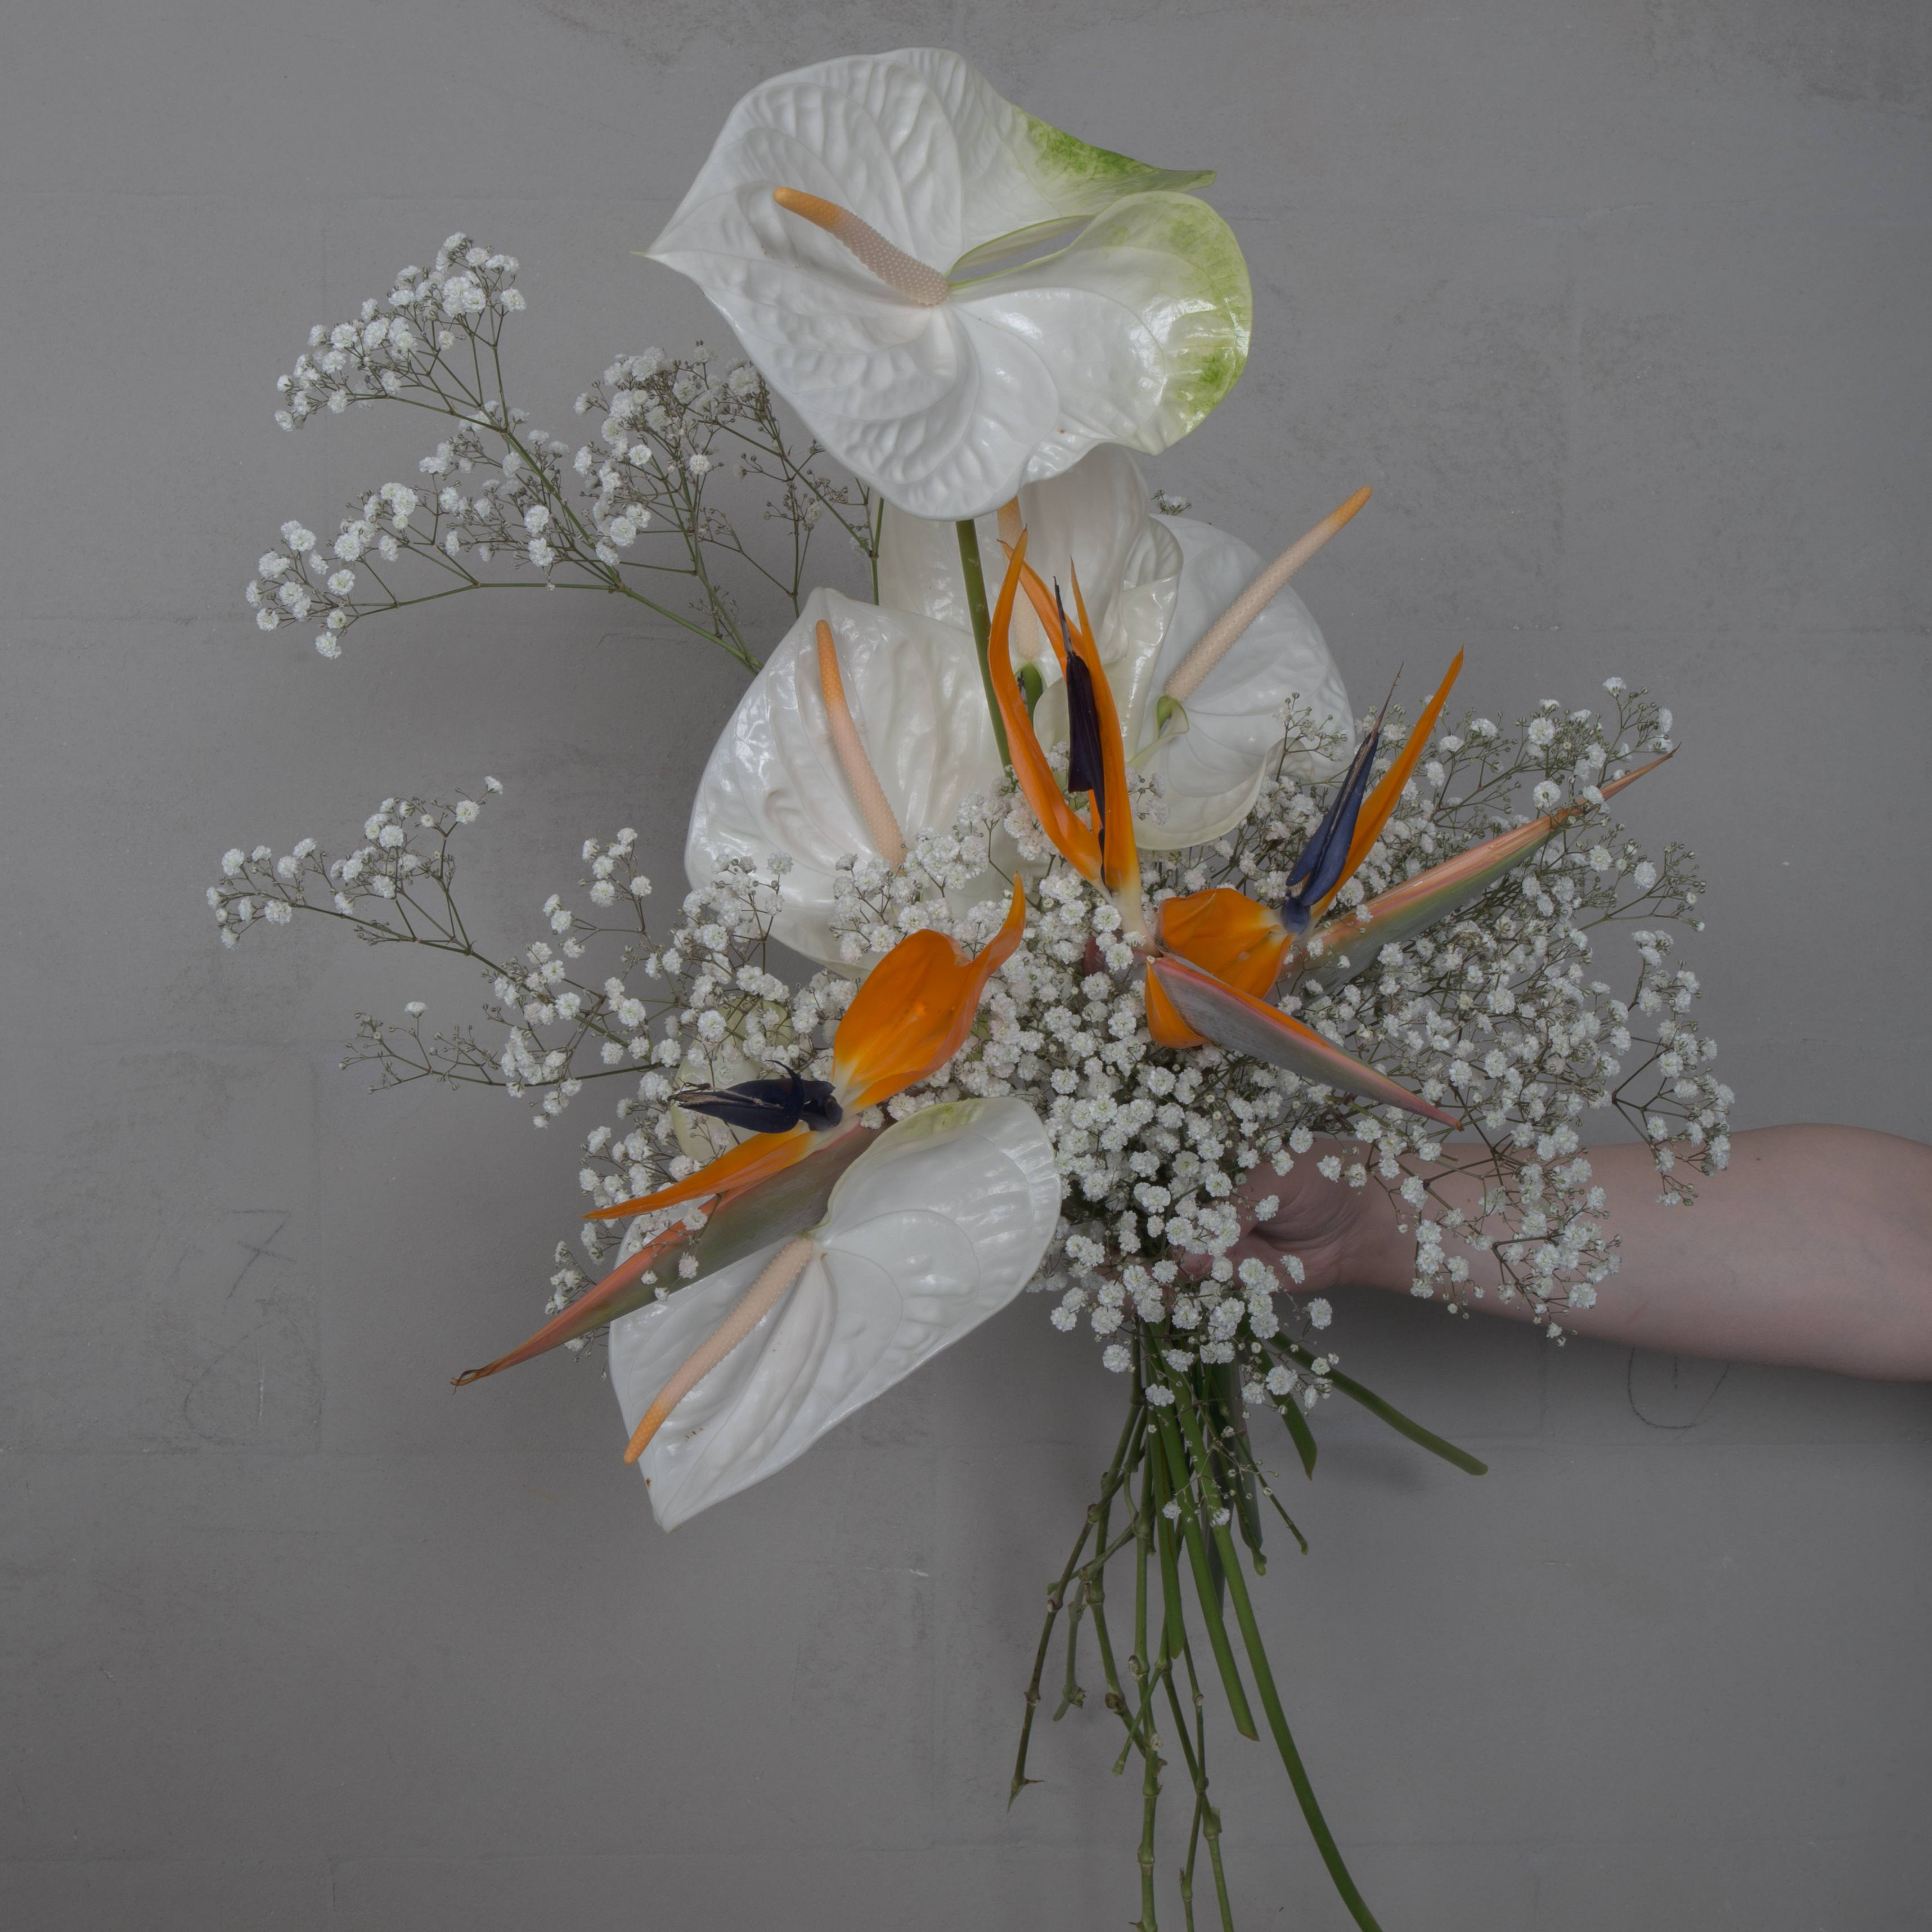 Wedding-bouquet-Finecut-weddings-collection-4-2019-homogeneity-and-harmony-with-gypsophila-and-strelitzia-known-as-the-bird-of-paradise